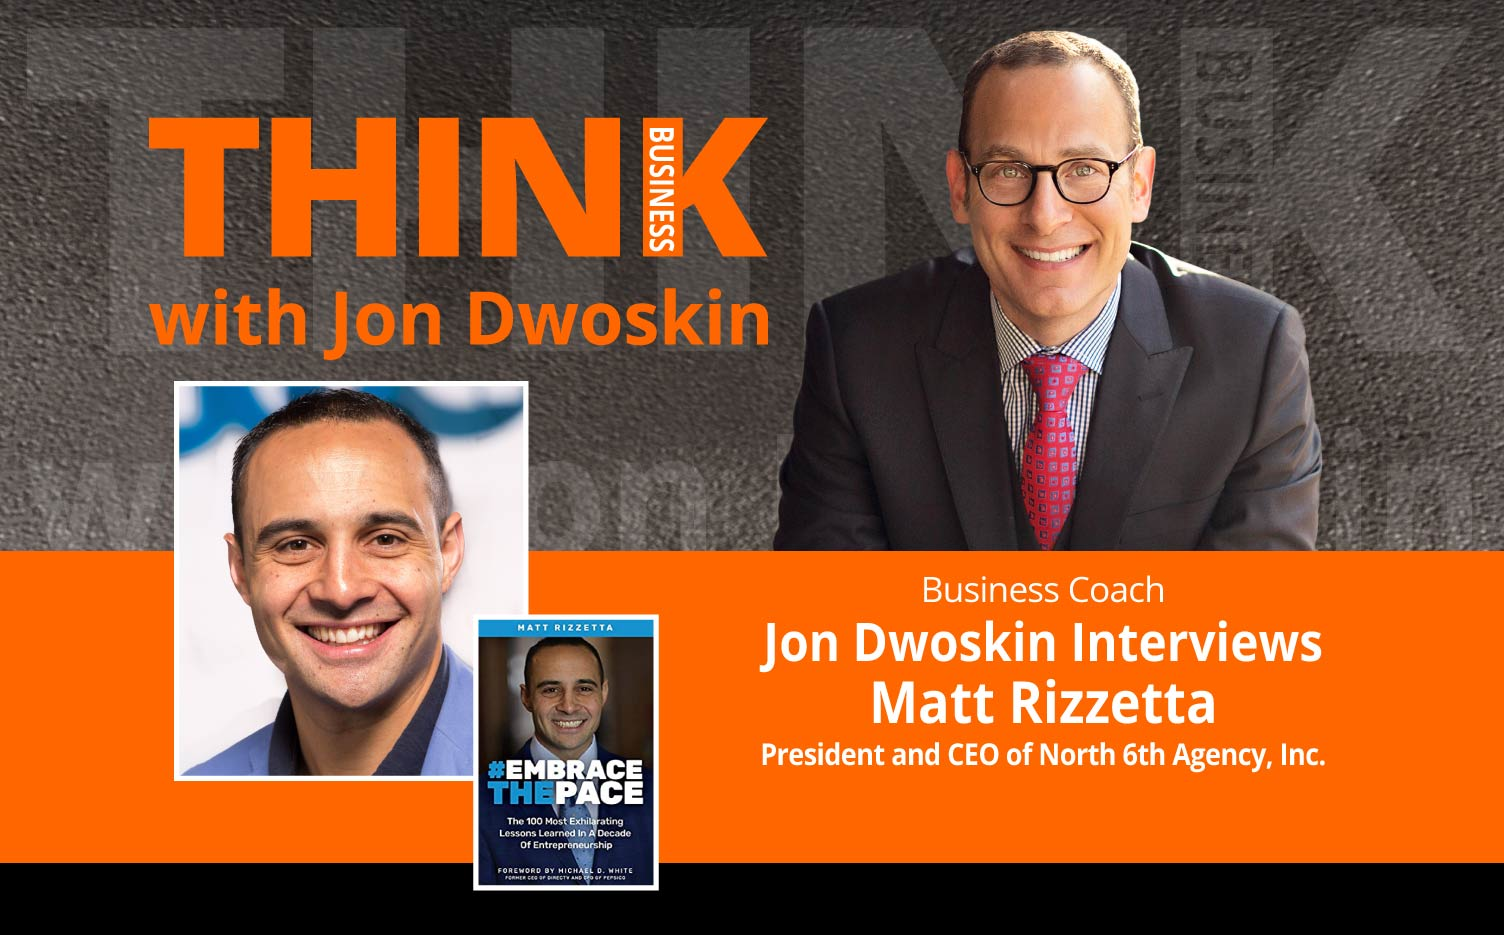 THINK Business Podcast: Jon Dwoskin Interviews Matt Rizzetta, President and CEO of North 6th Agency, Inc.